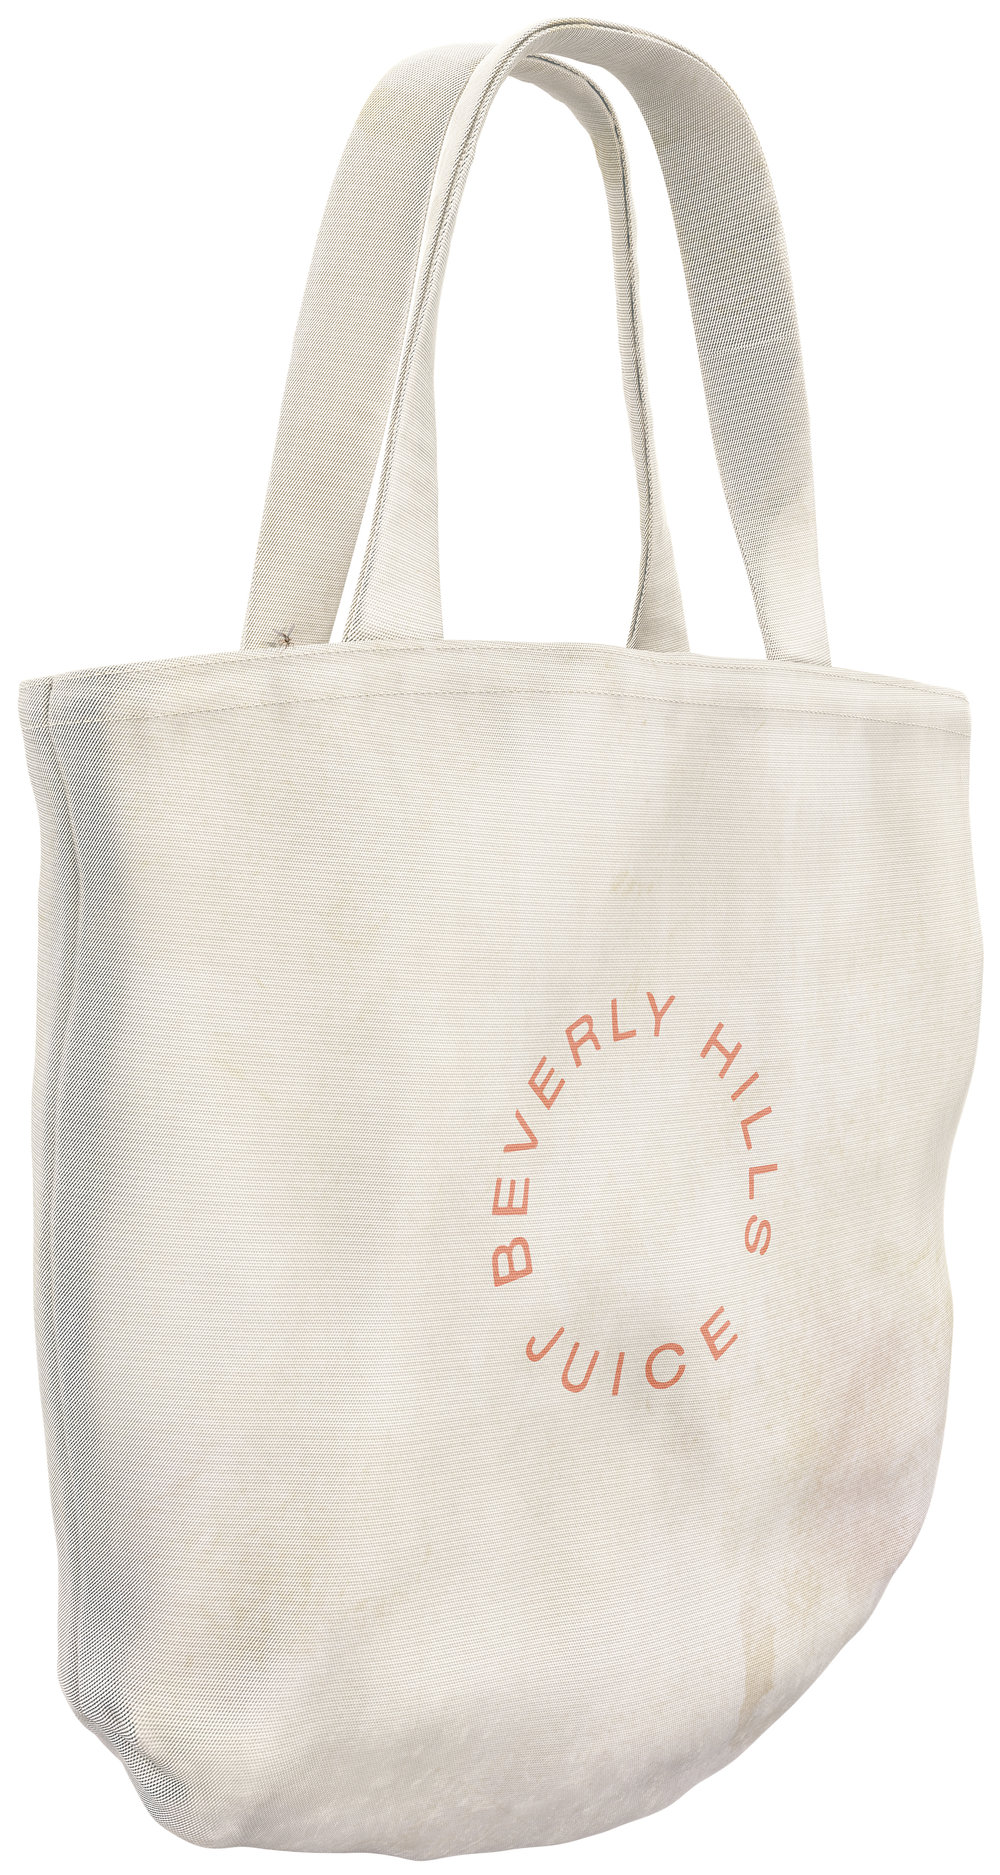 Asha Schechter  Beverly Hills Juice Club tote bag with mosquito modeled and rendered by Cem Batur Kemikkiran,  2018 Inkjet print on adhesive vinyl 1+1AP 70h x 37w in Asch008